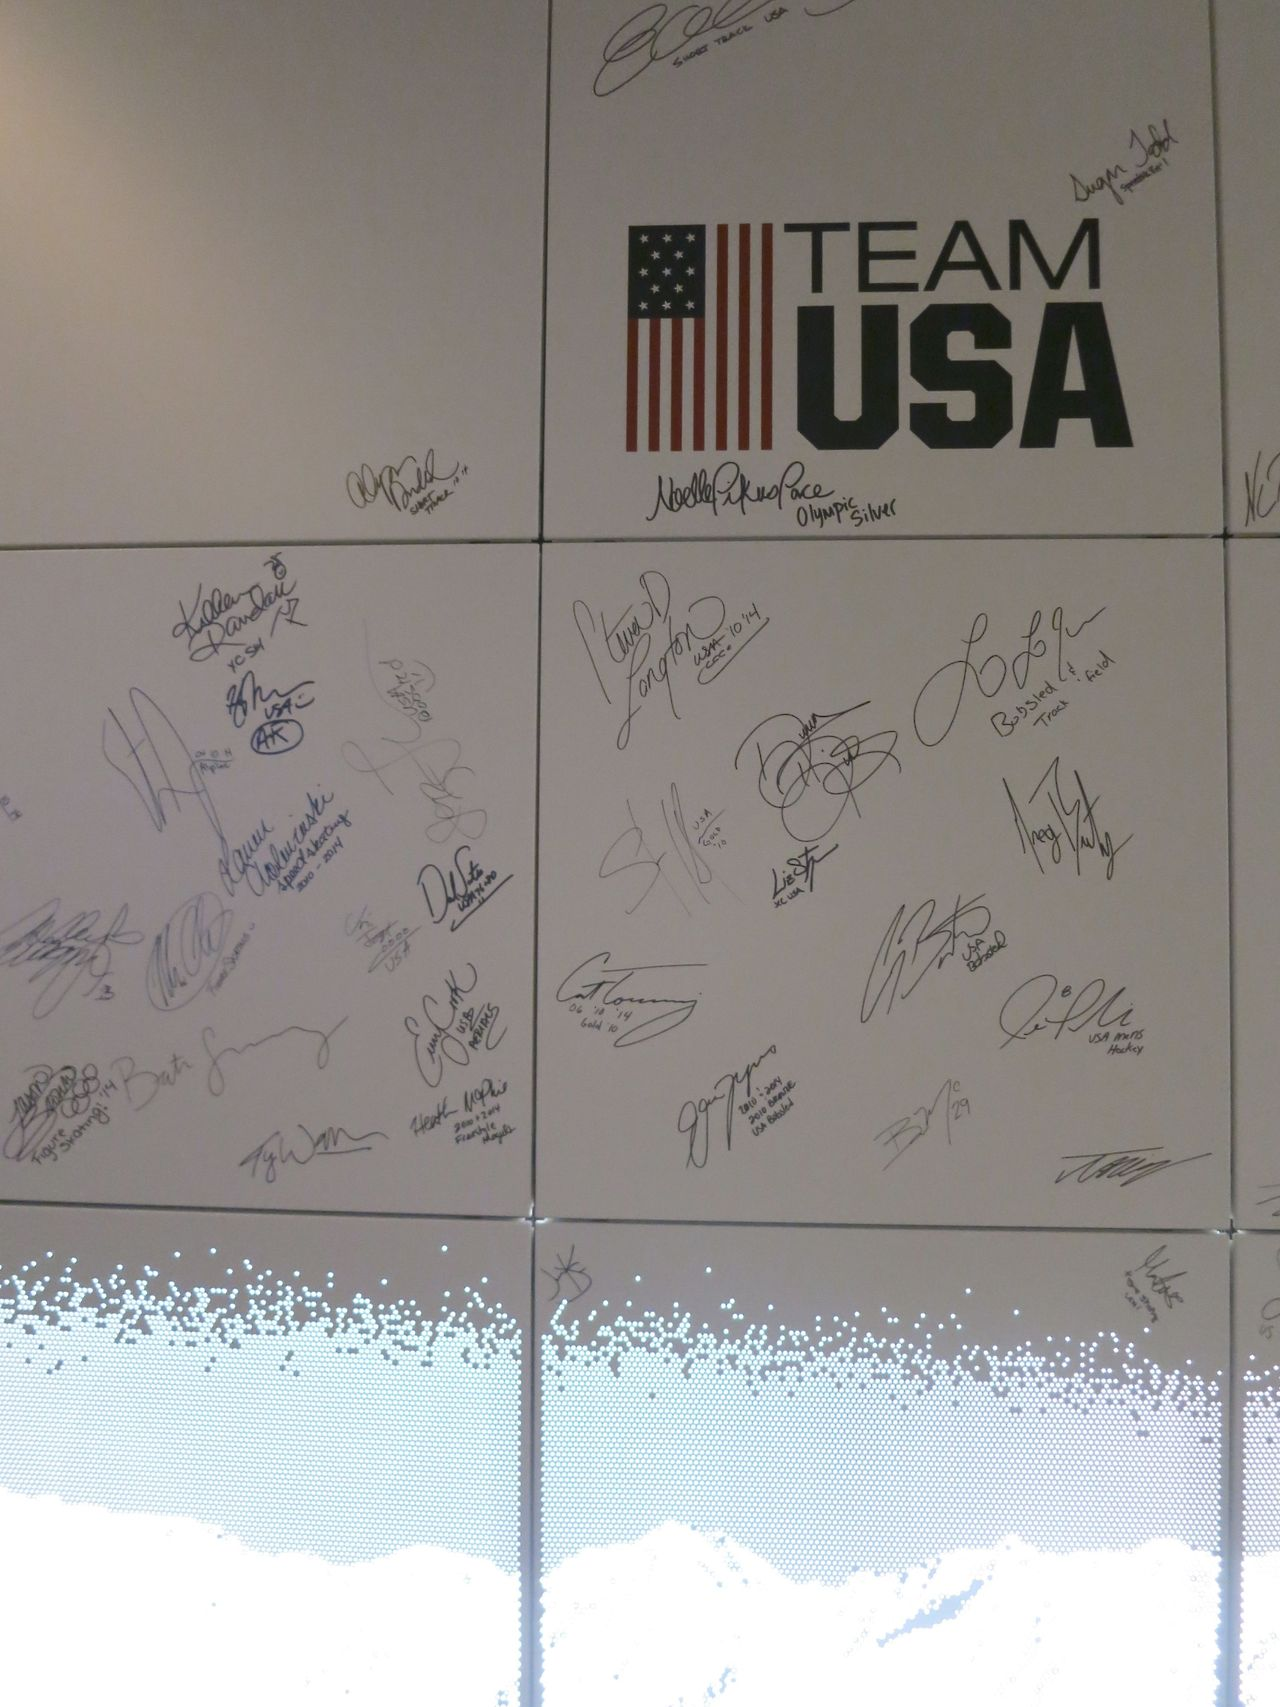 valentineuhovski: The wall of fame at the USA house. Did Russia censor the bottom of this photo? Regardless whatever happened there looks awesome.